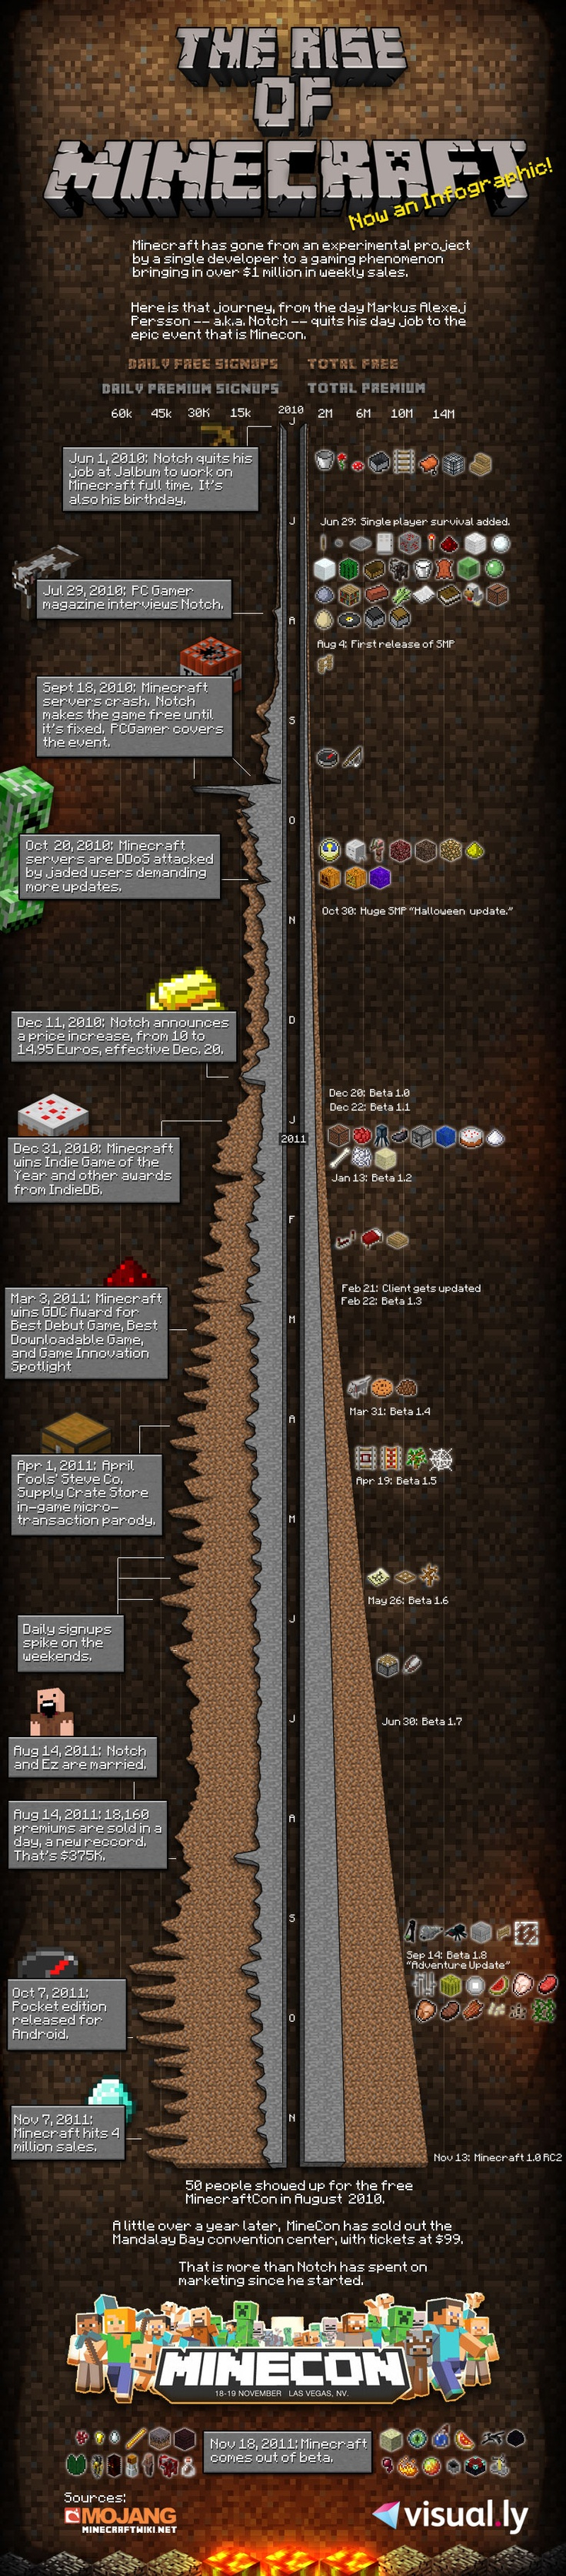 Great minecraft infographic http://www.kickstarter.com/projects/1920201071/brick-building-bears